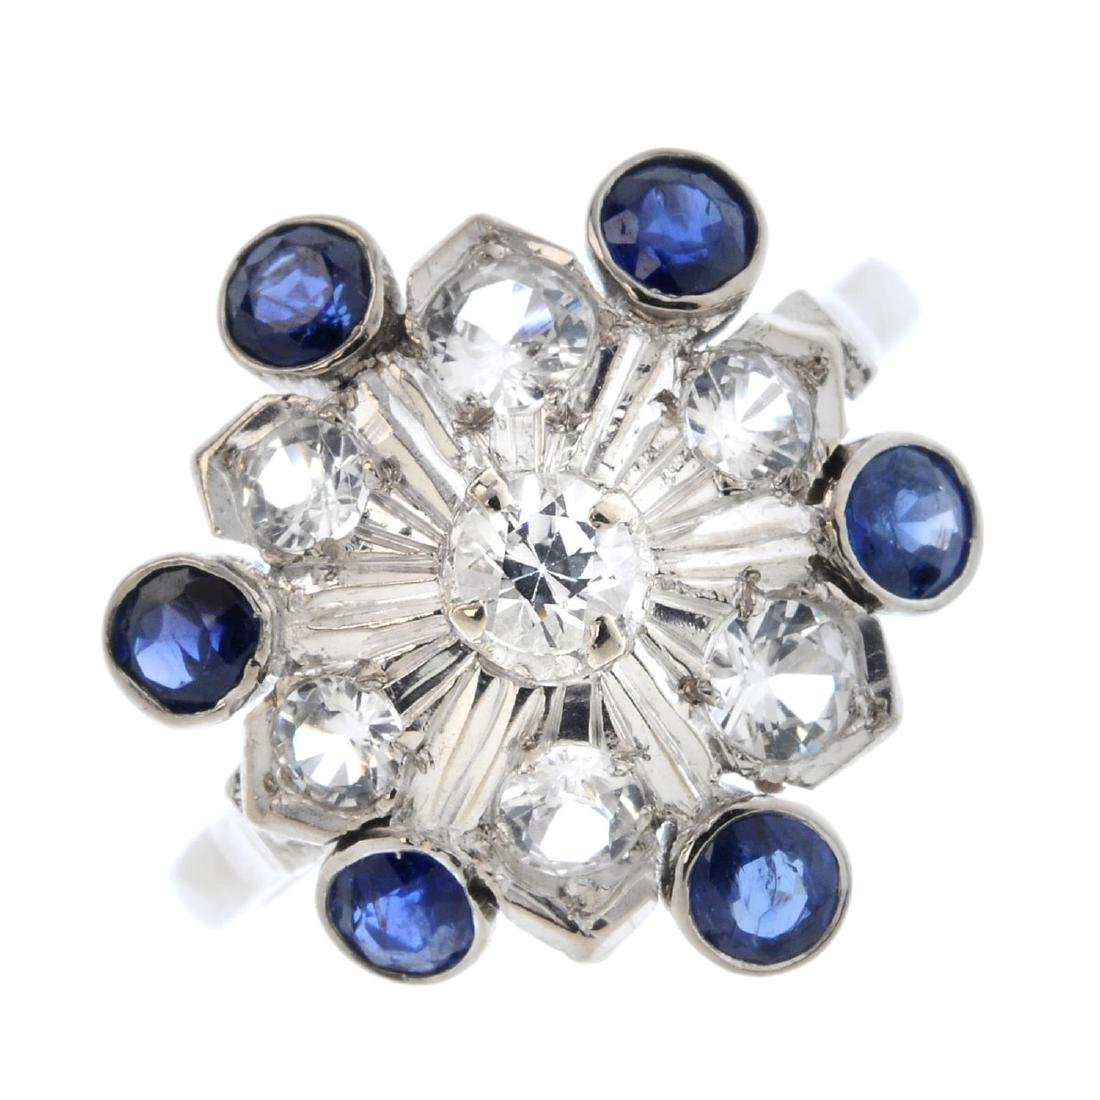 A sapphire and colourless gem cluster ring. The